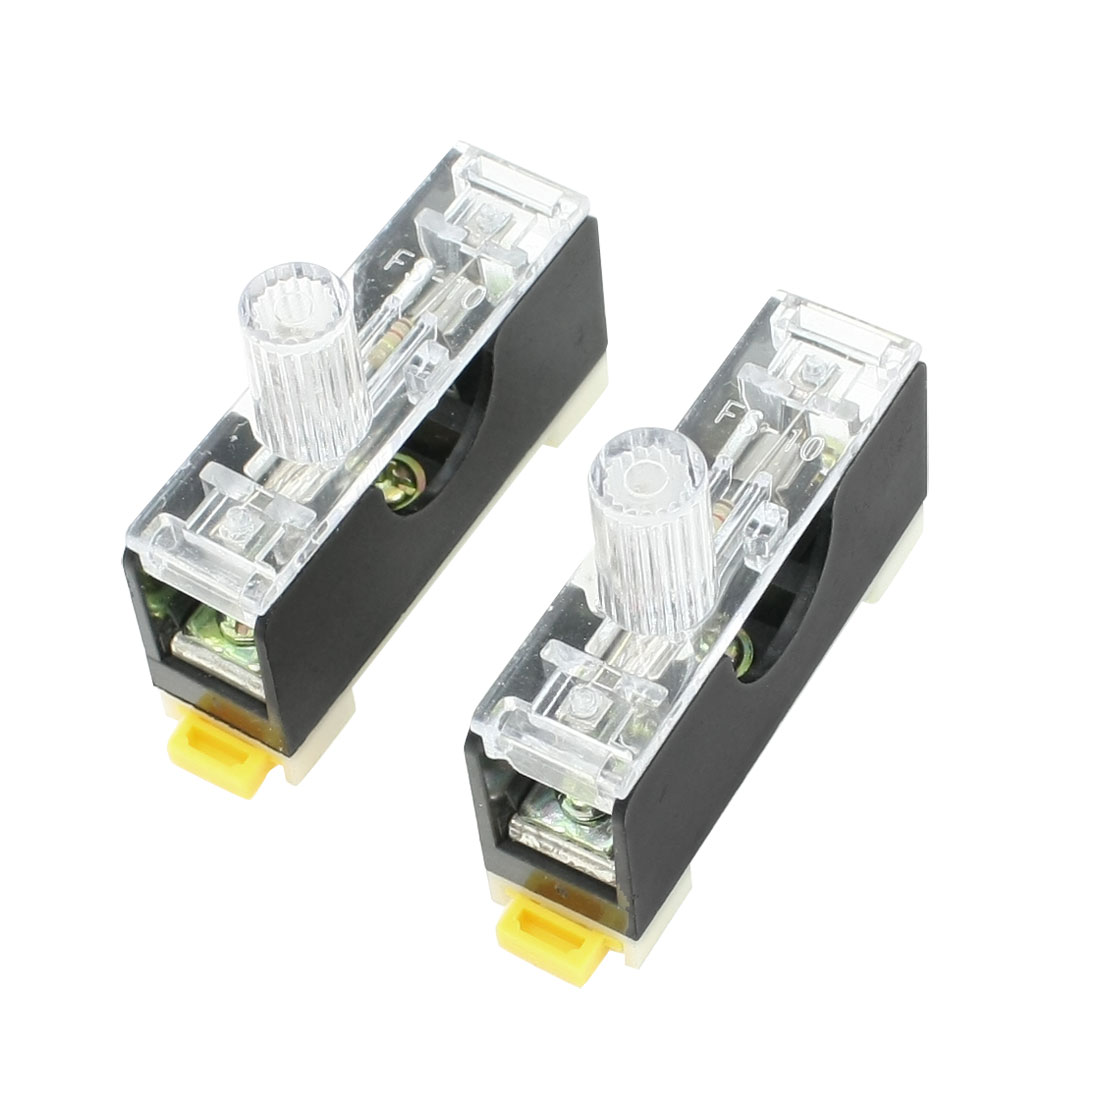 2 Pcs FS-10 AC 250V 10A 1 Pole 6x30mm Fuse Holder Base